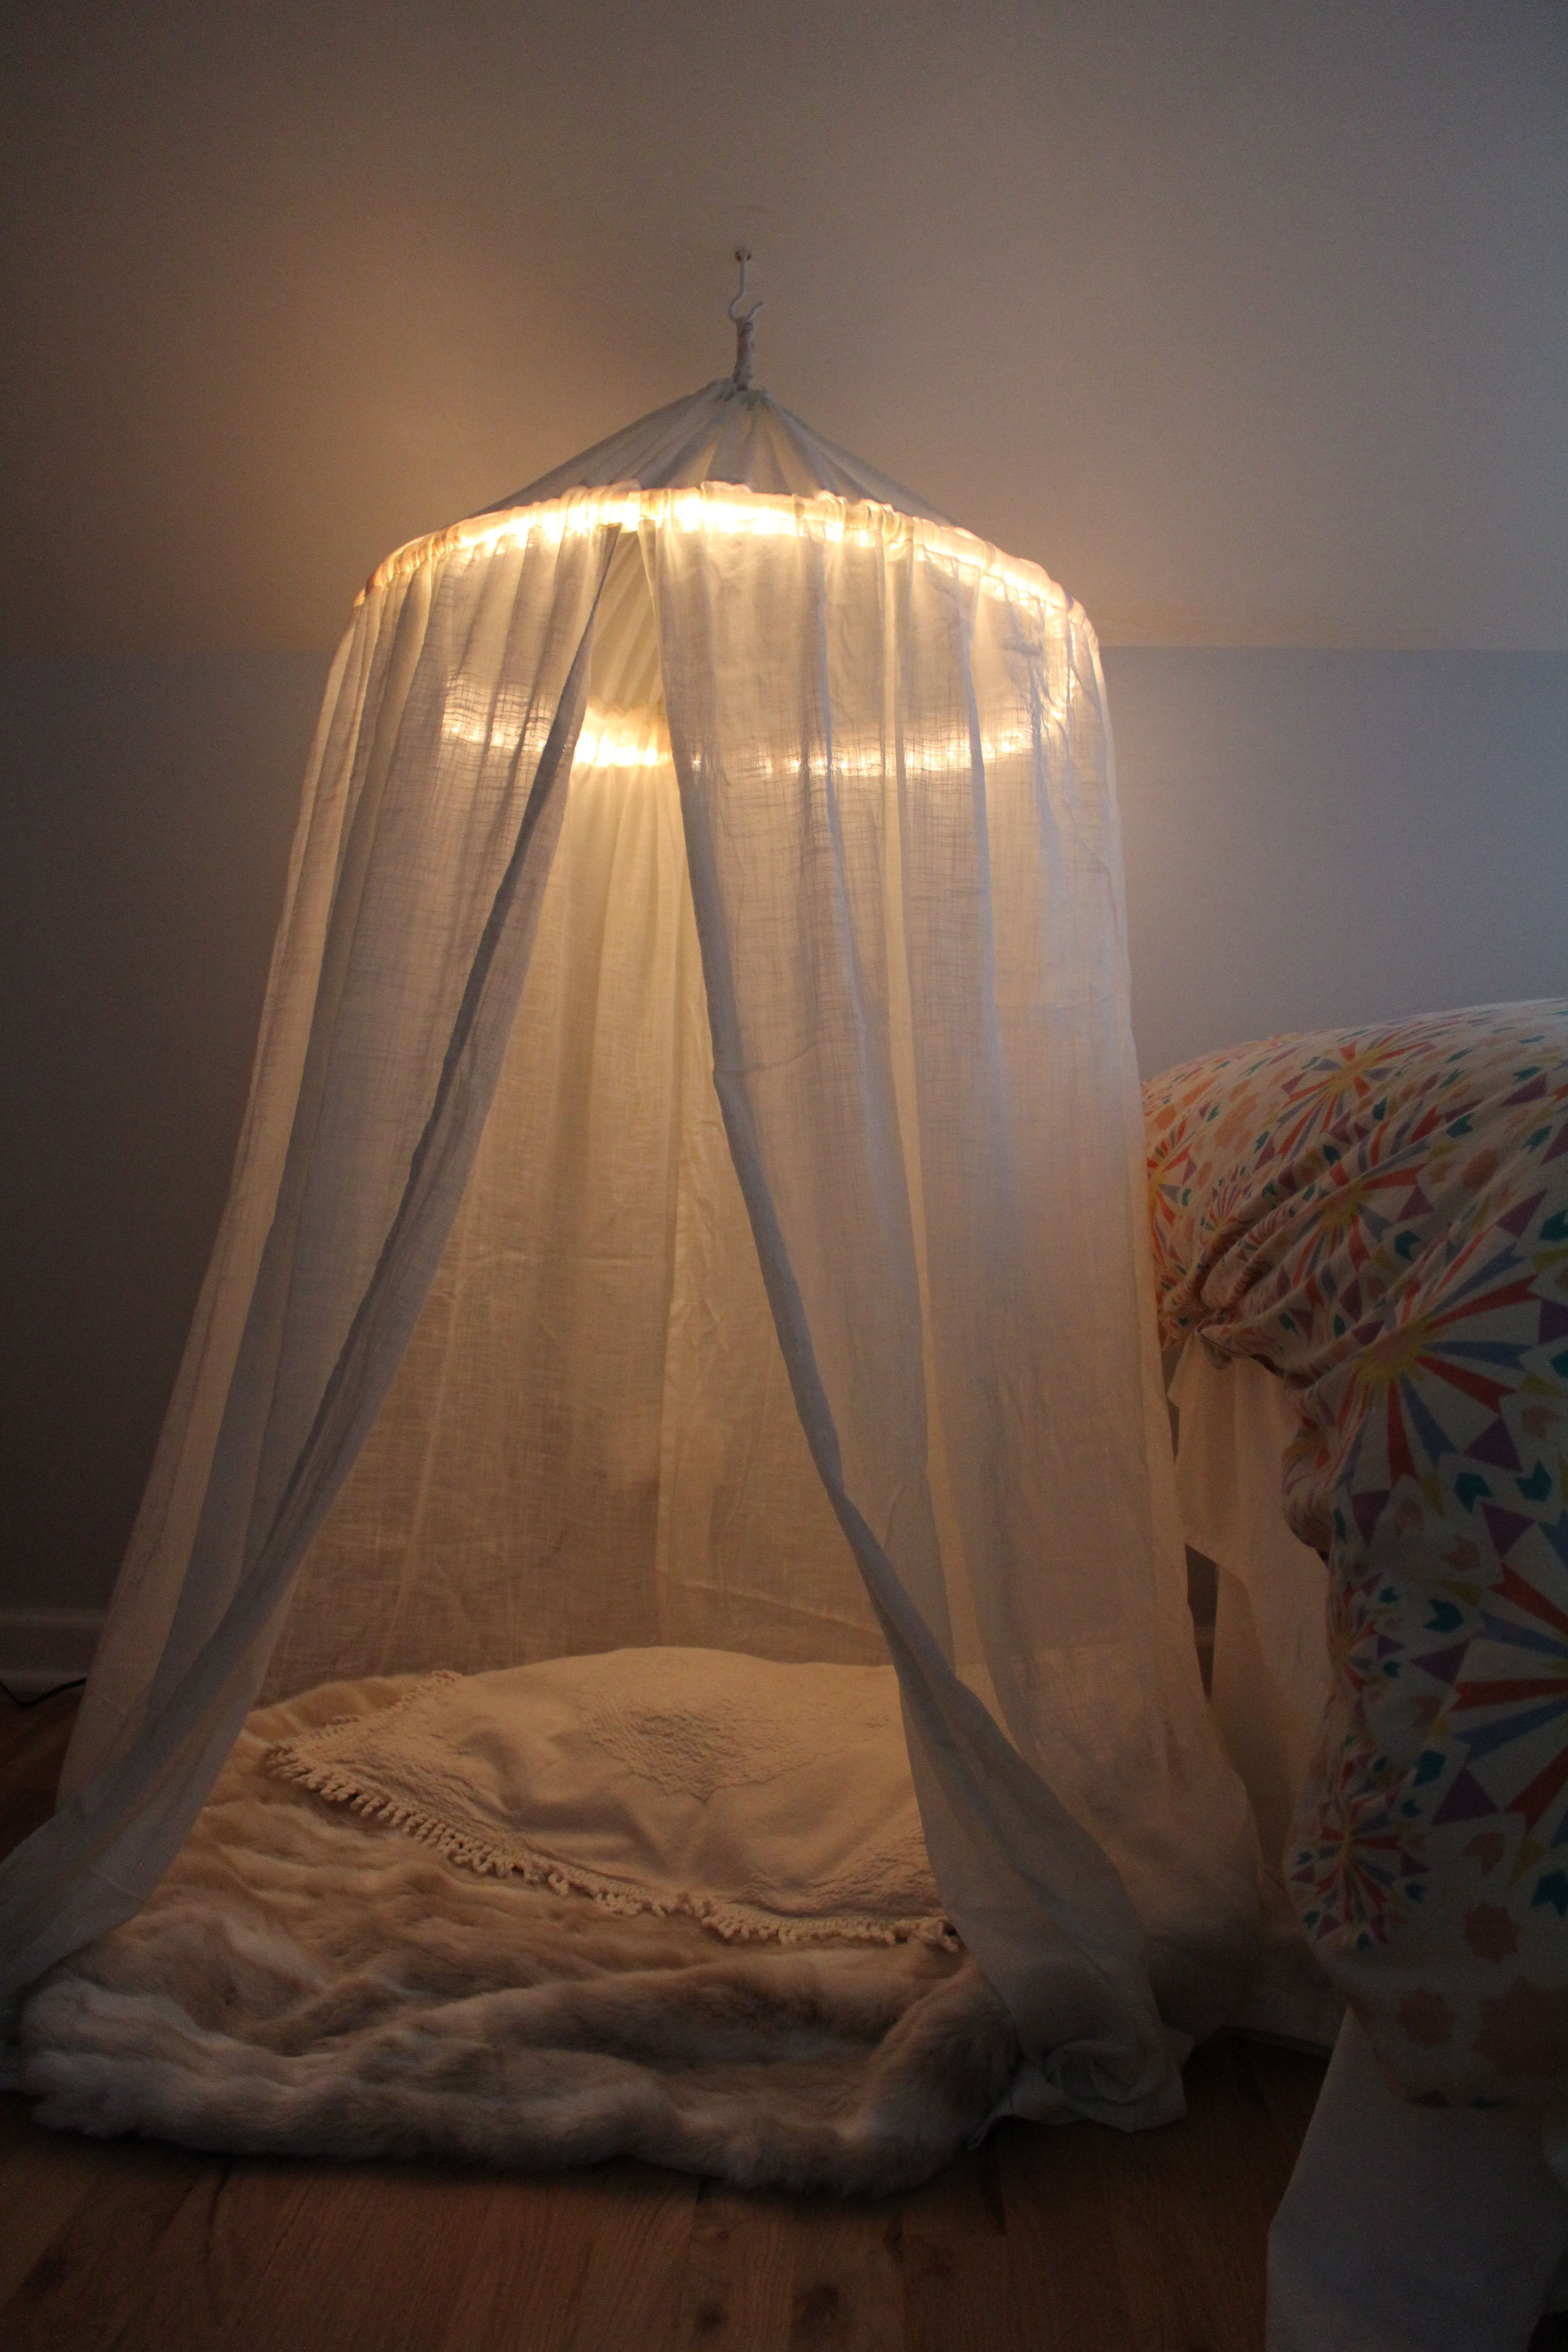 Tulle Canopy Diy Diy Lit Play Tent Reading Nook Ill Have Room When She Doesnt